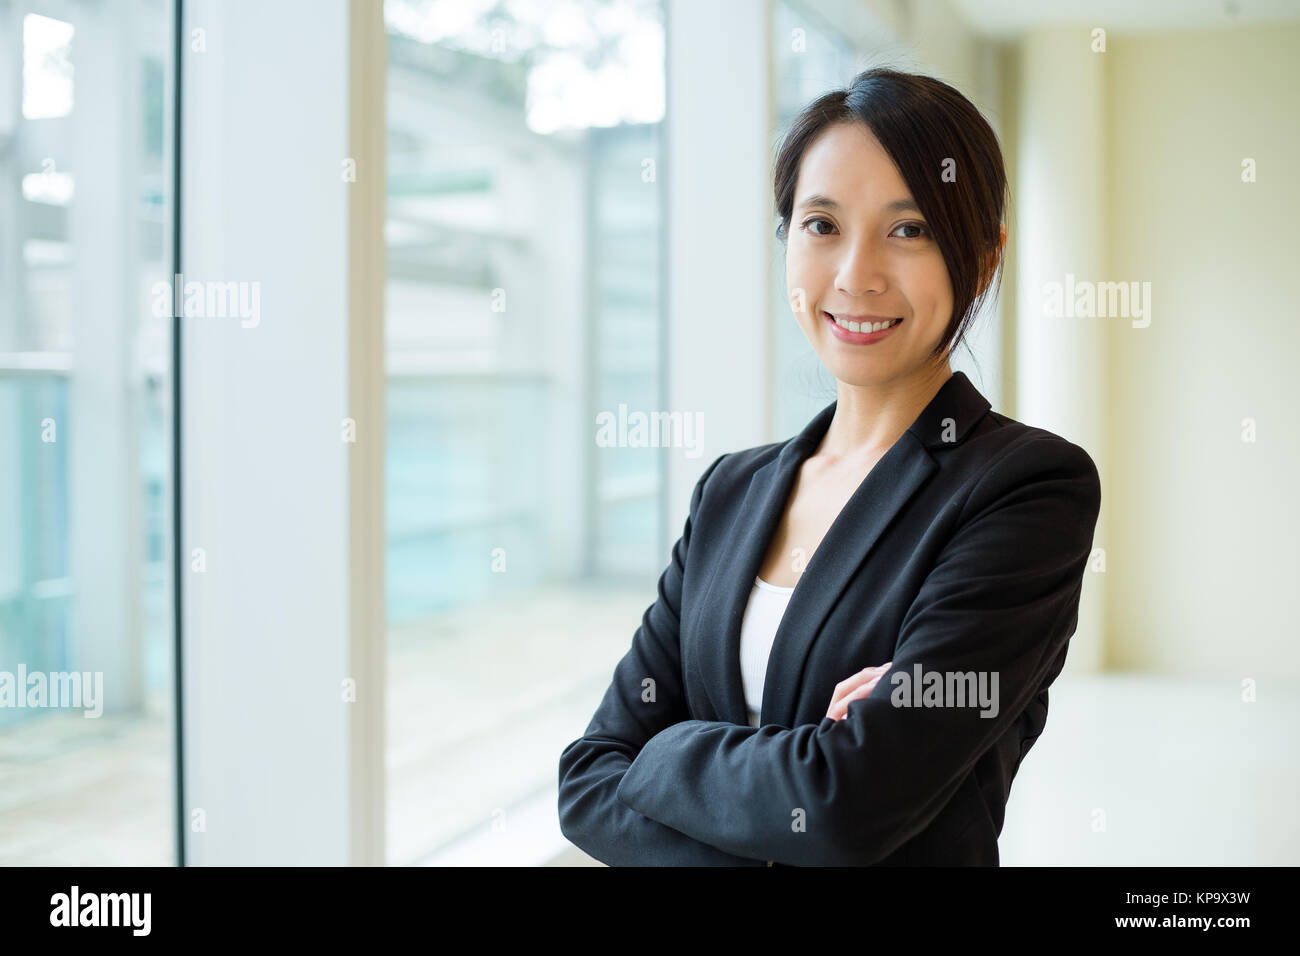 Businesswoman at office Photo Stock